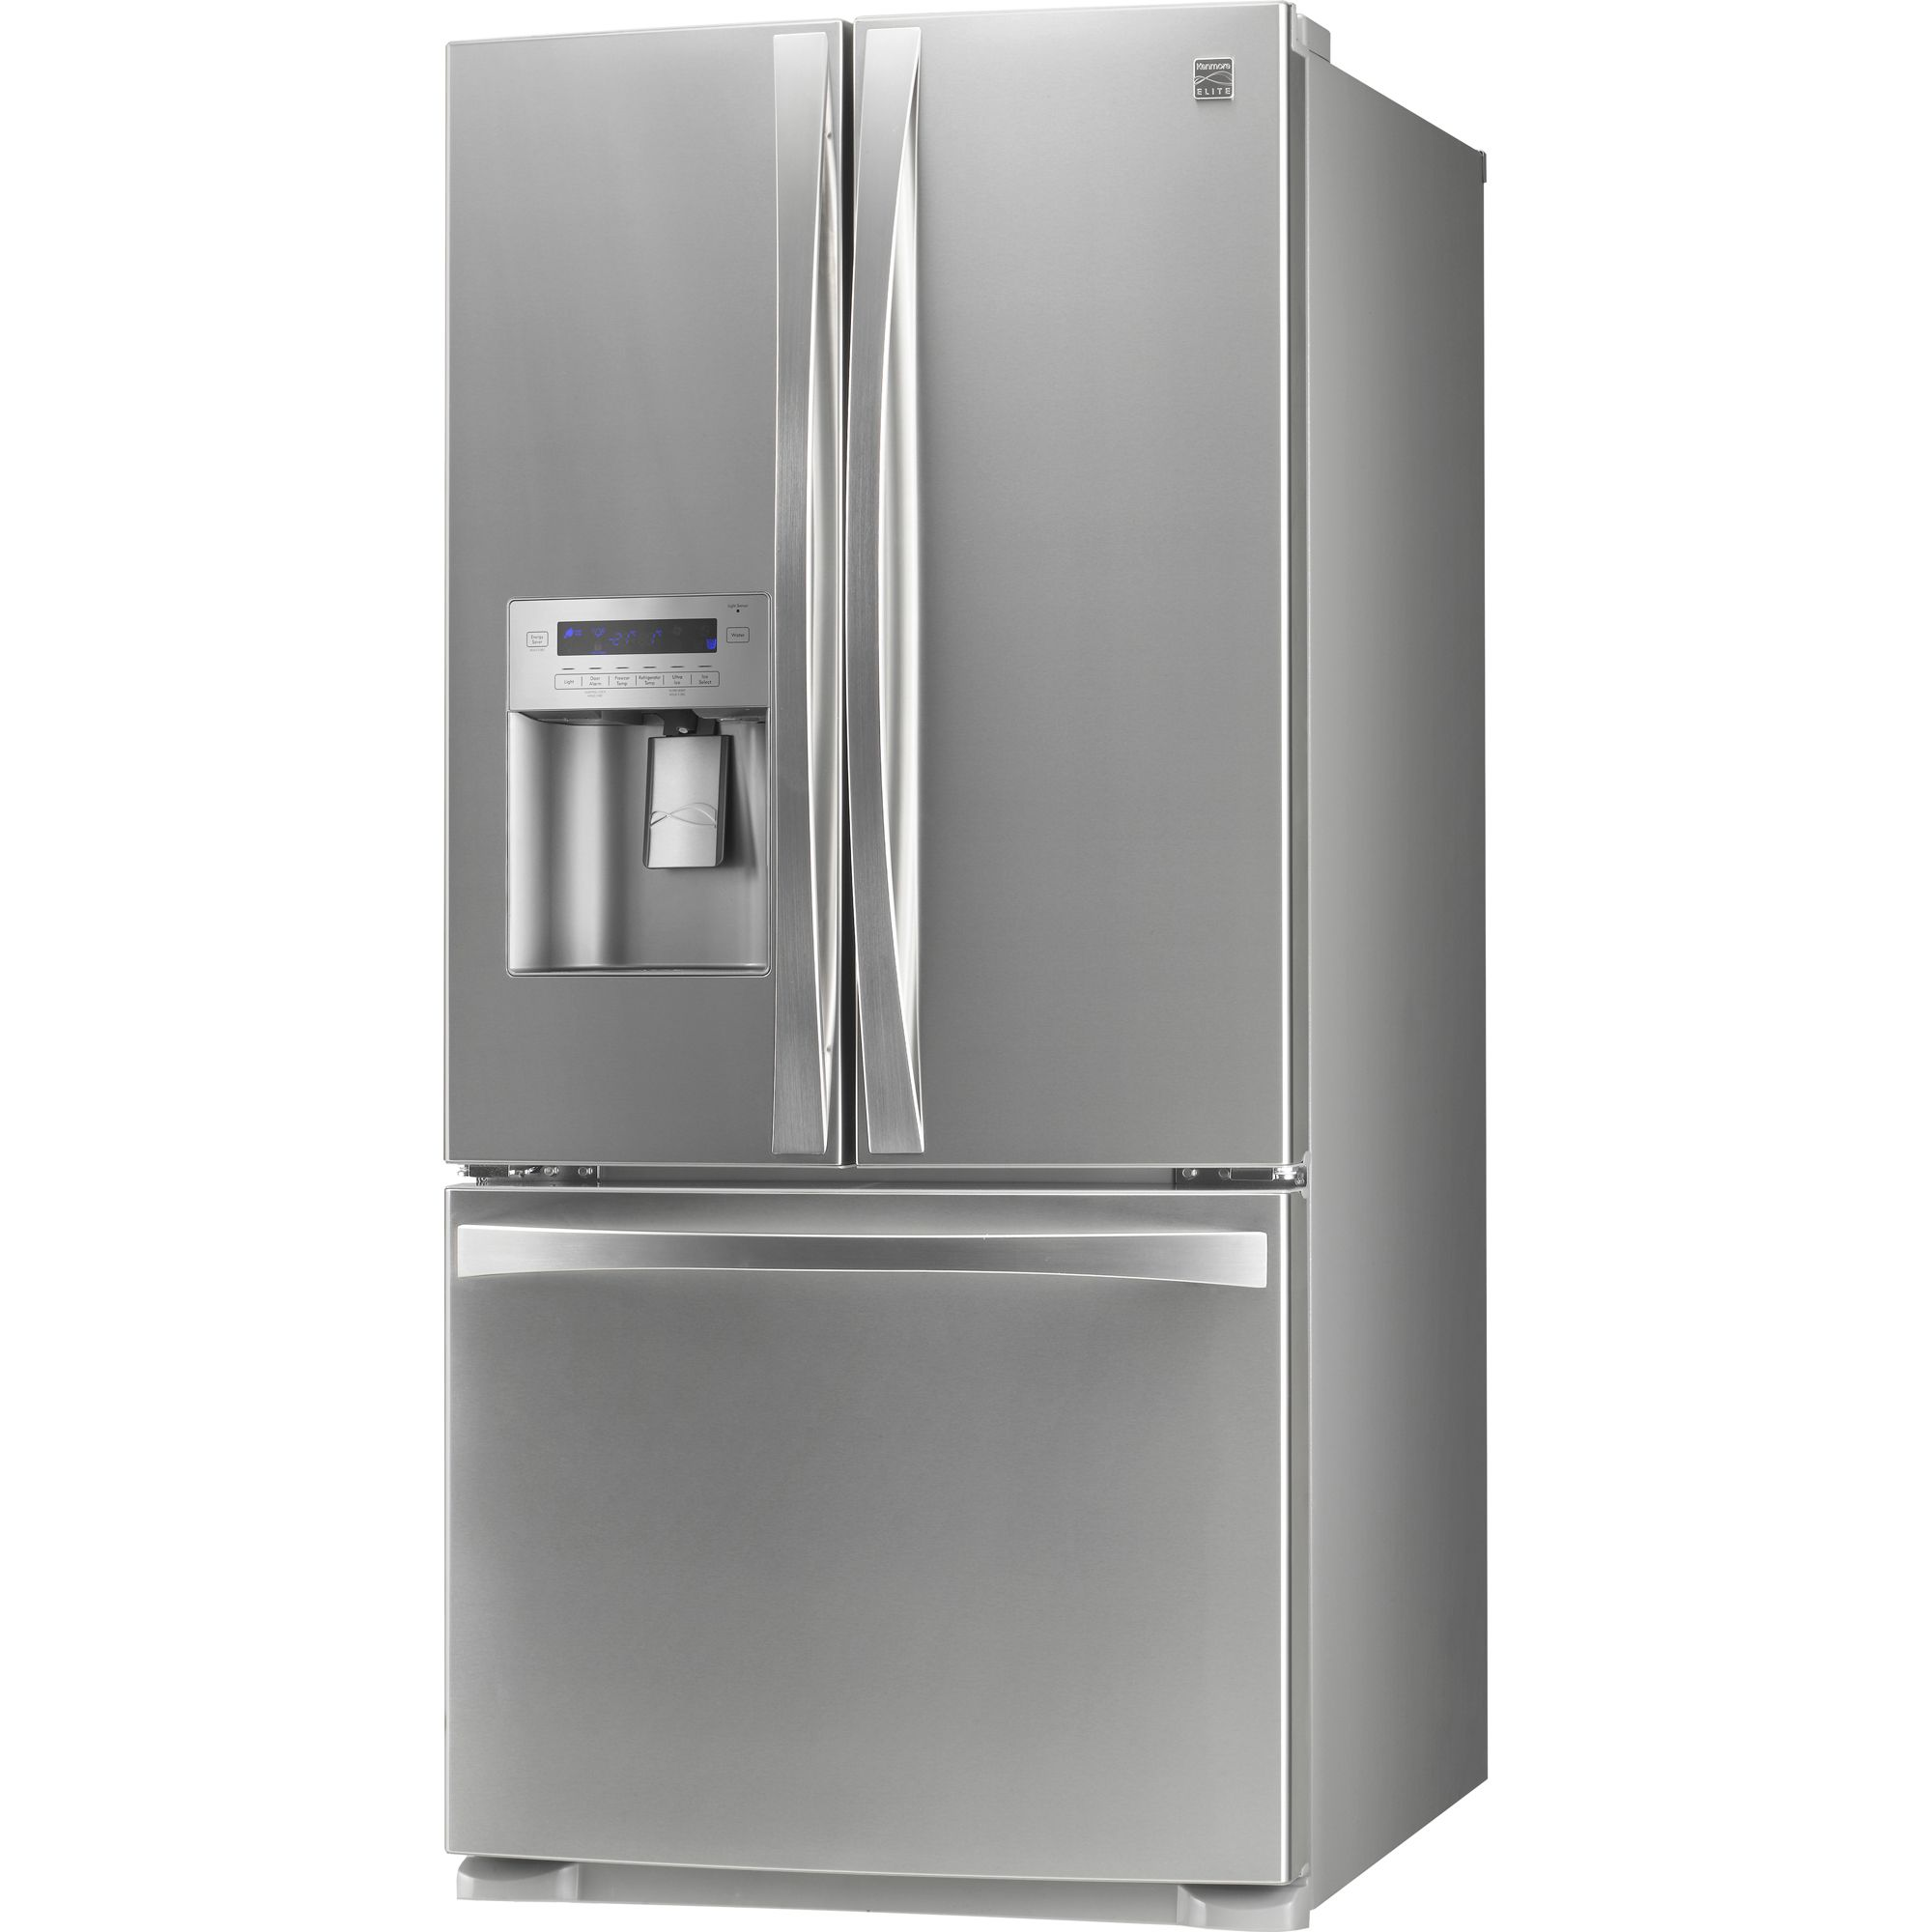 Kenmore Elite 25.0 cu. ft. French-Door Bottom-Freezer Refrigerator - Stainless Steel